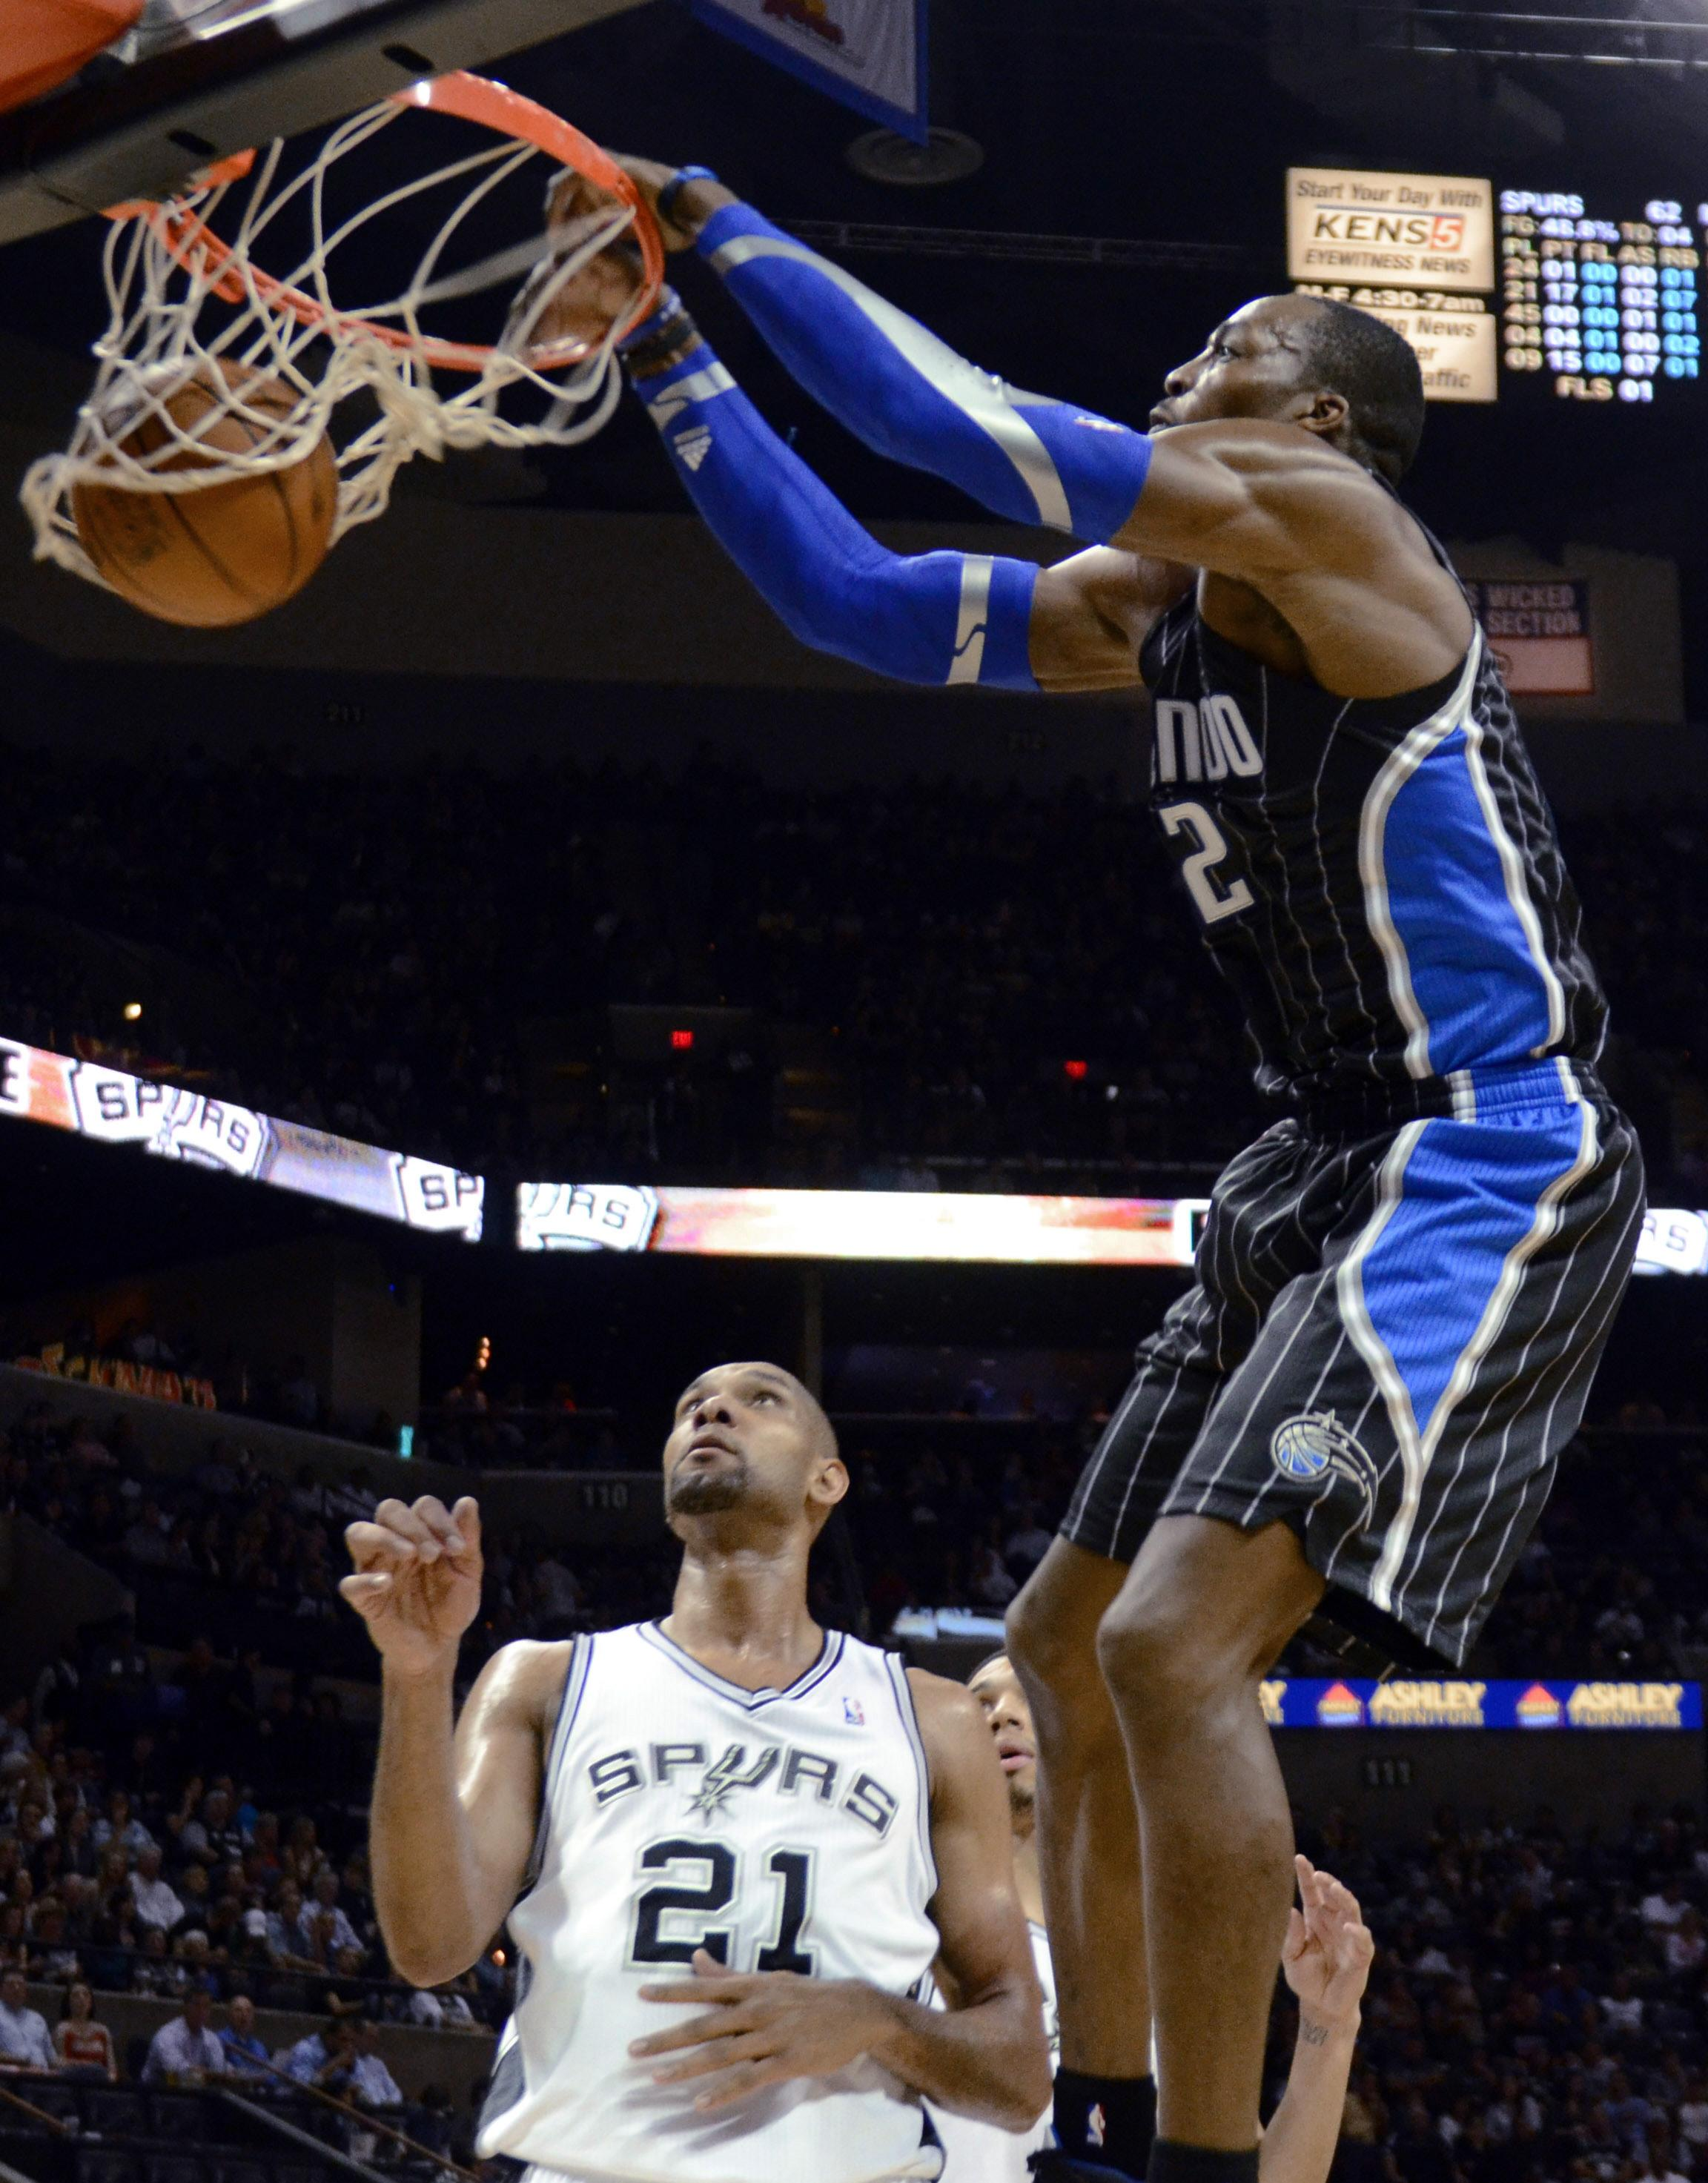 Orlando Magic center Dwight Howard scores on an dunk in front of San Antonio Spurs forward Tim Duncan during the second half of an NBA basketball game Wednesday, March 14, 2012, in San Antonio. (AP Photo/Bahram Mark Sobhani)